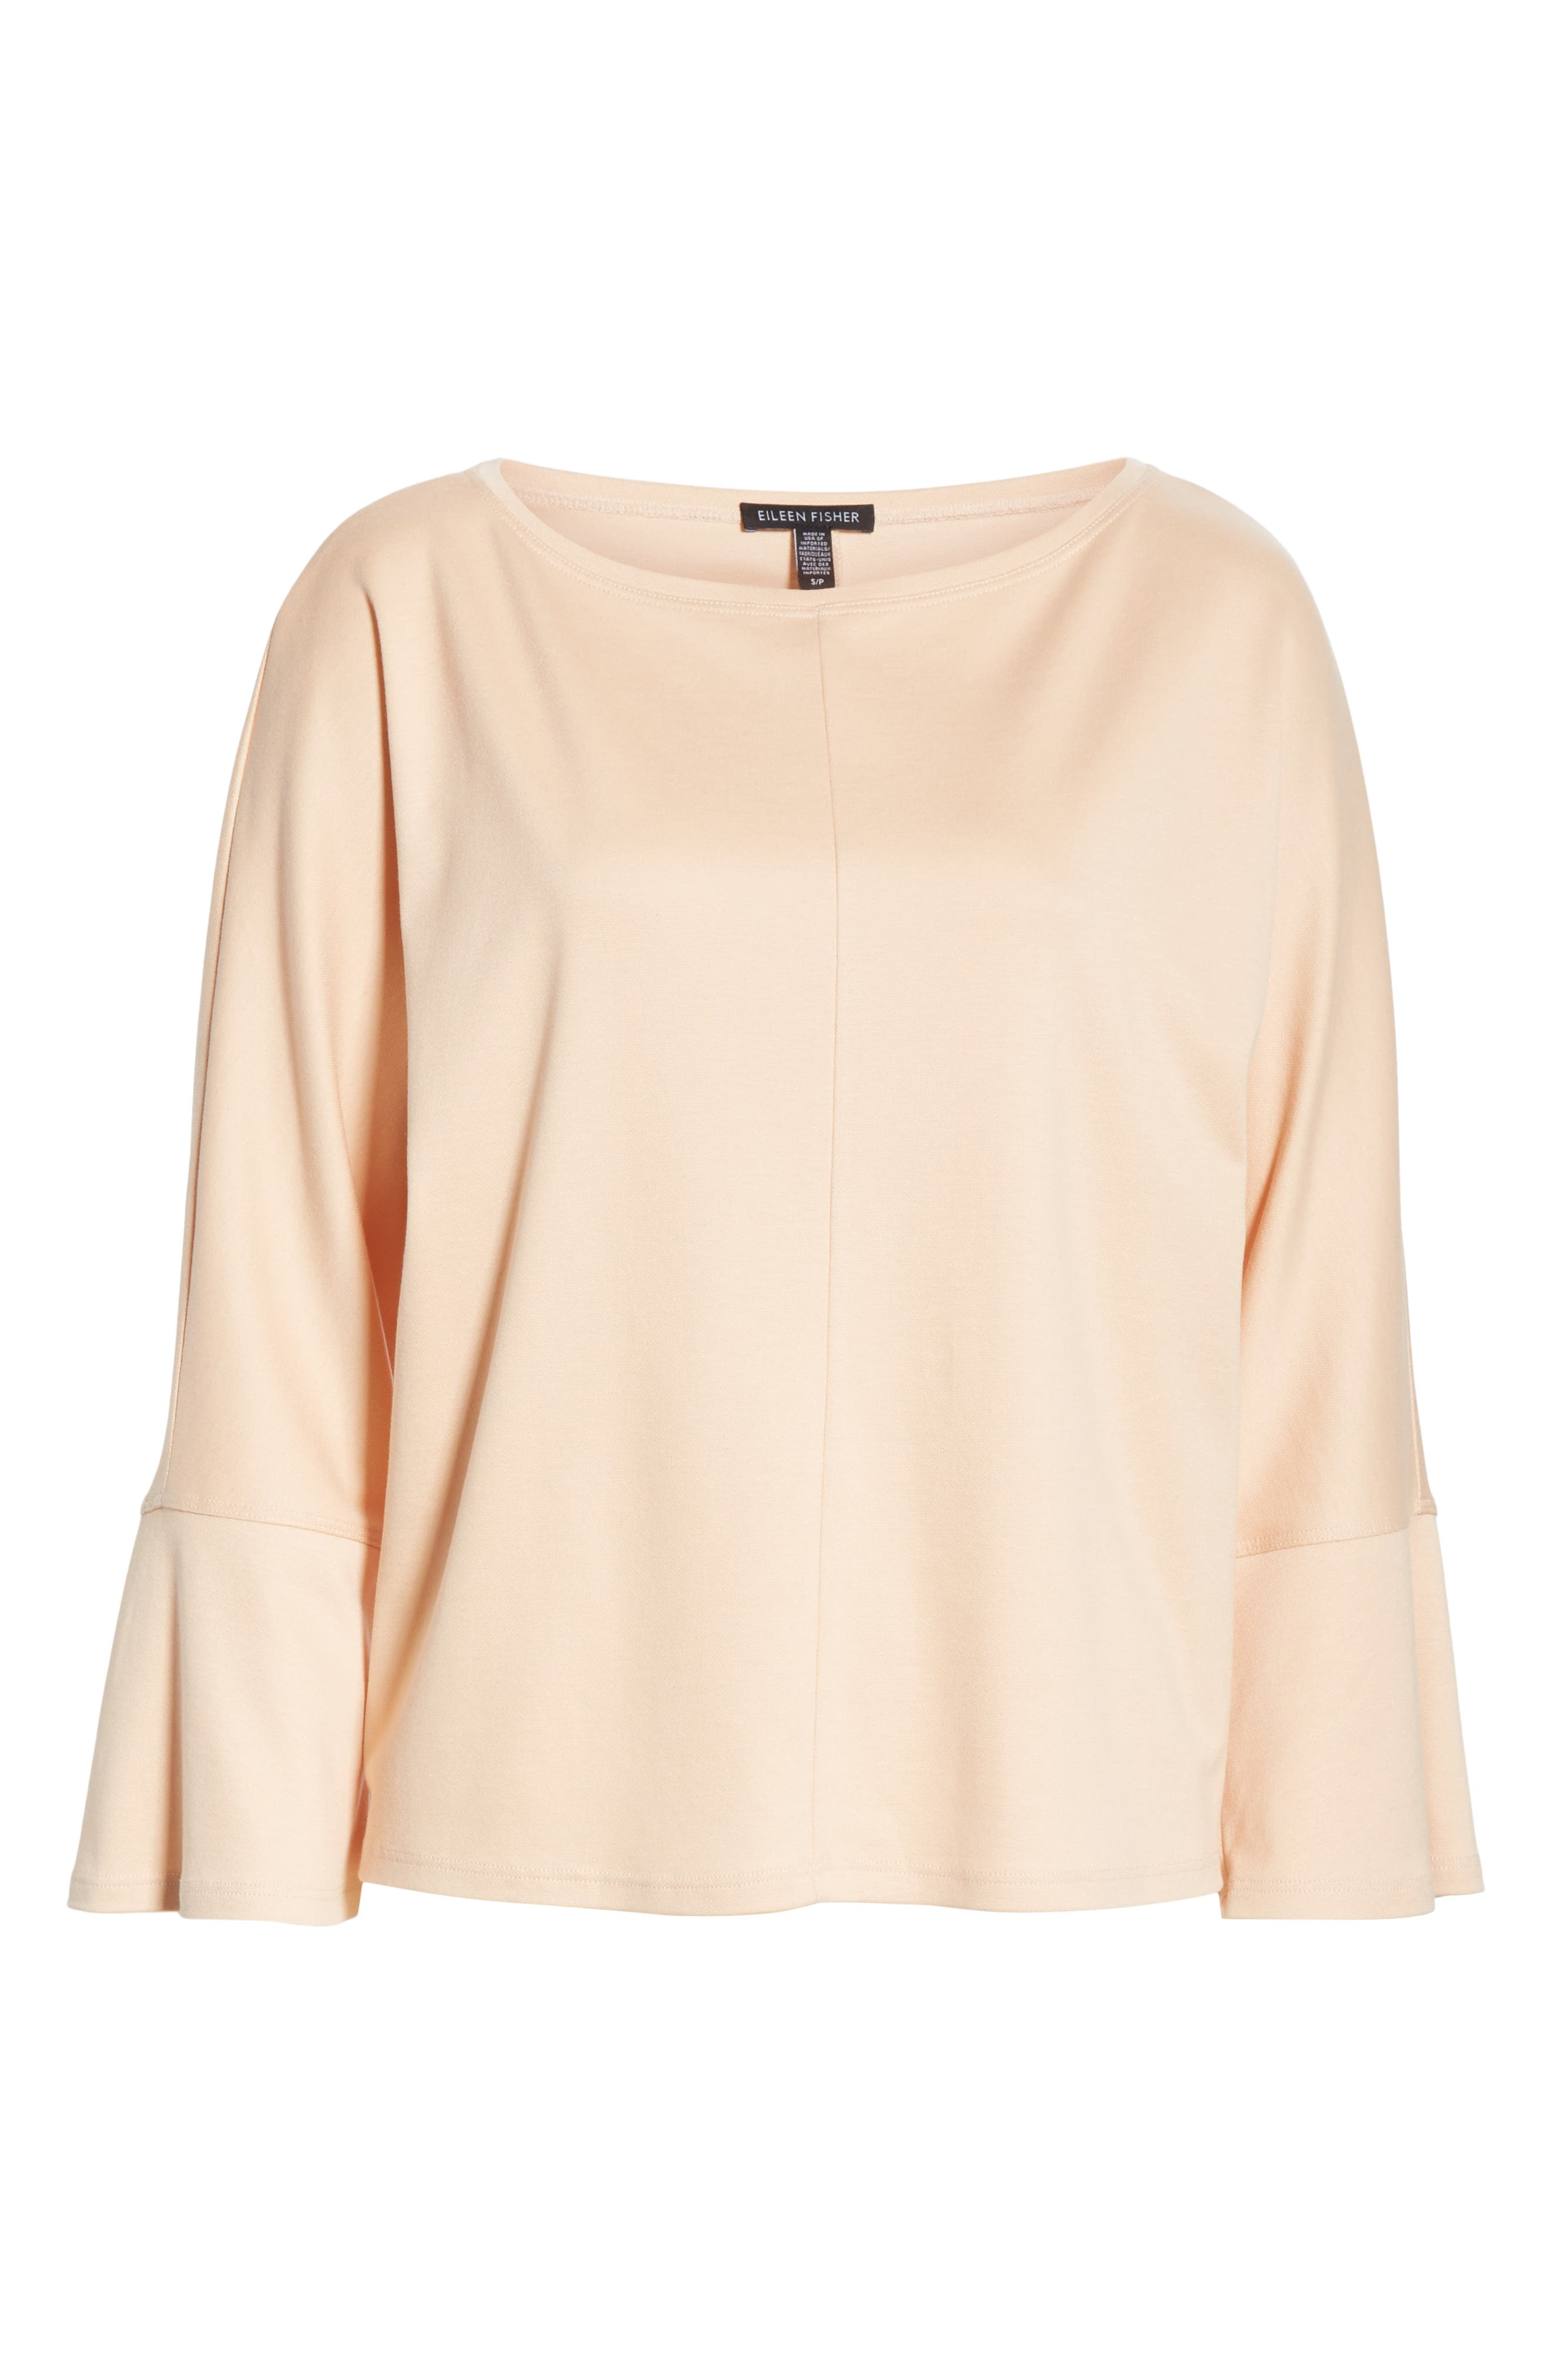 EILEEN FISHER, Bell Sleeve Top, Alternate thumbnail 6, color, ROSE WATER